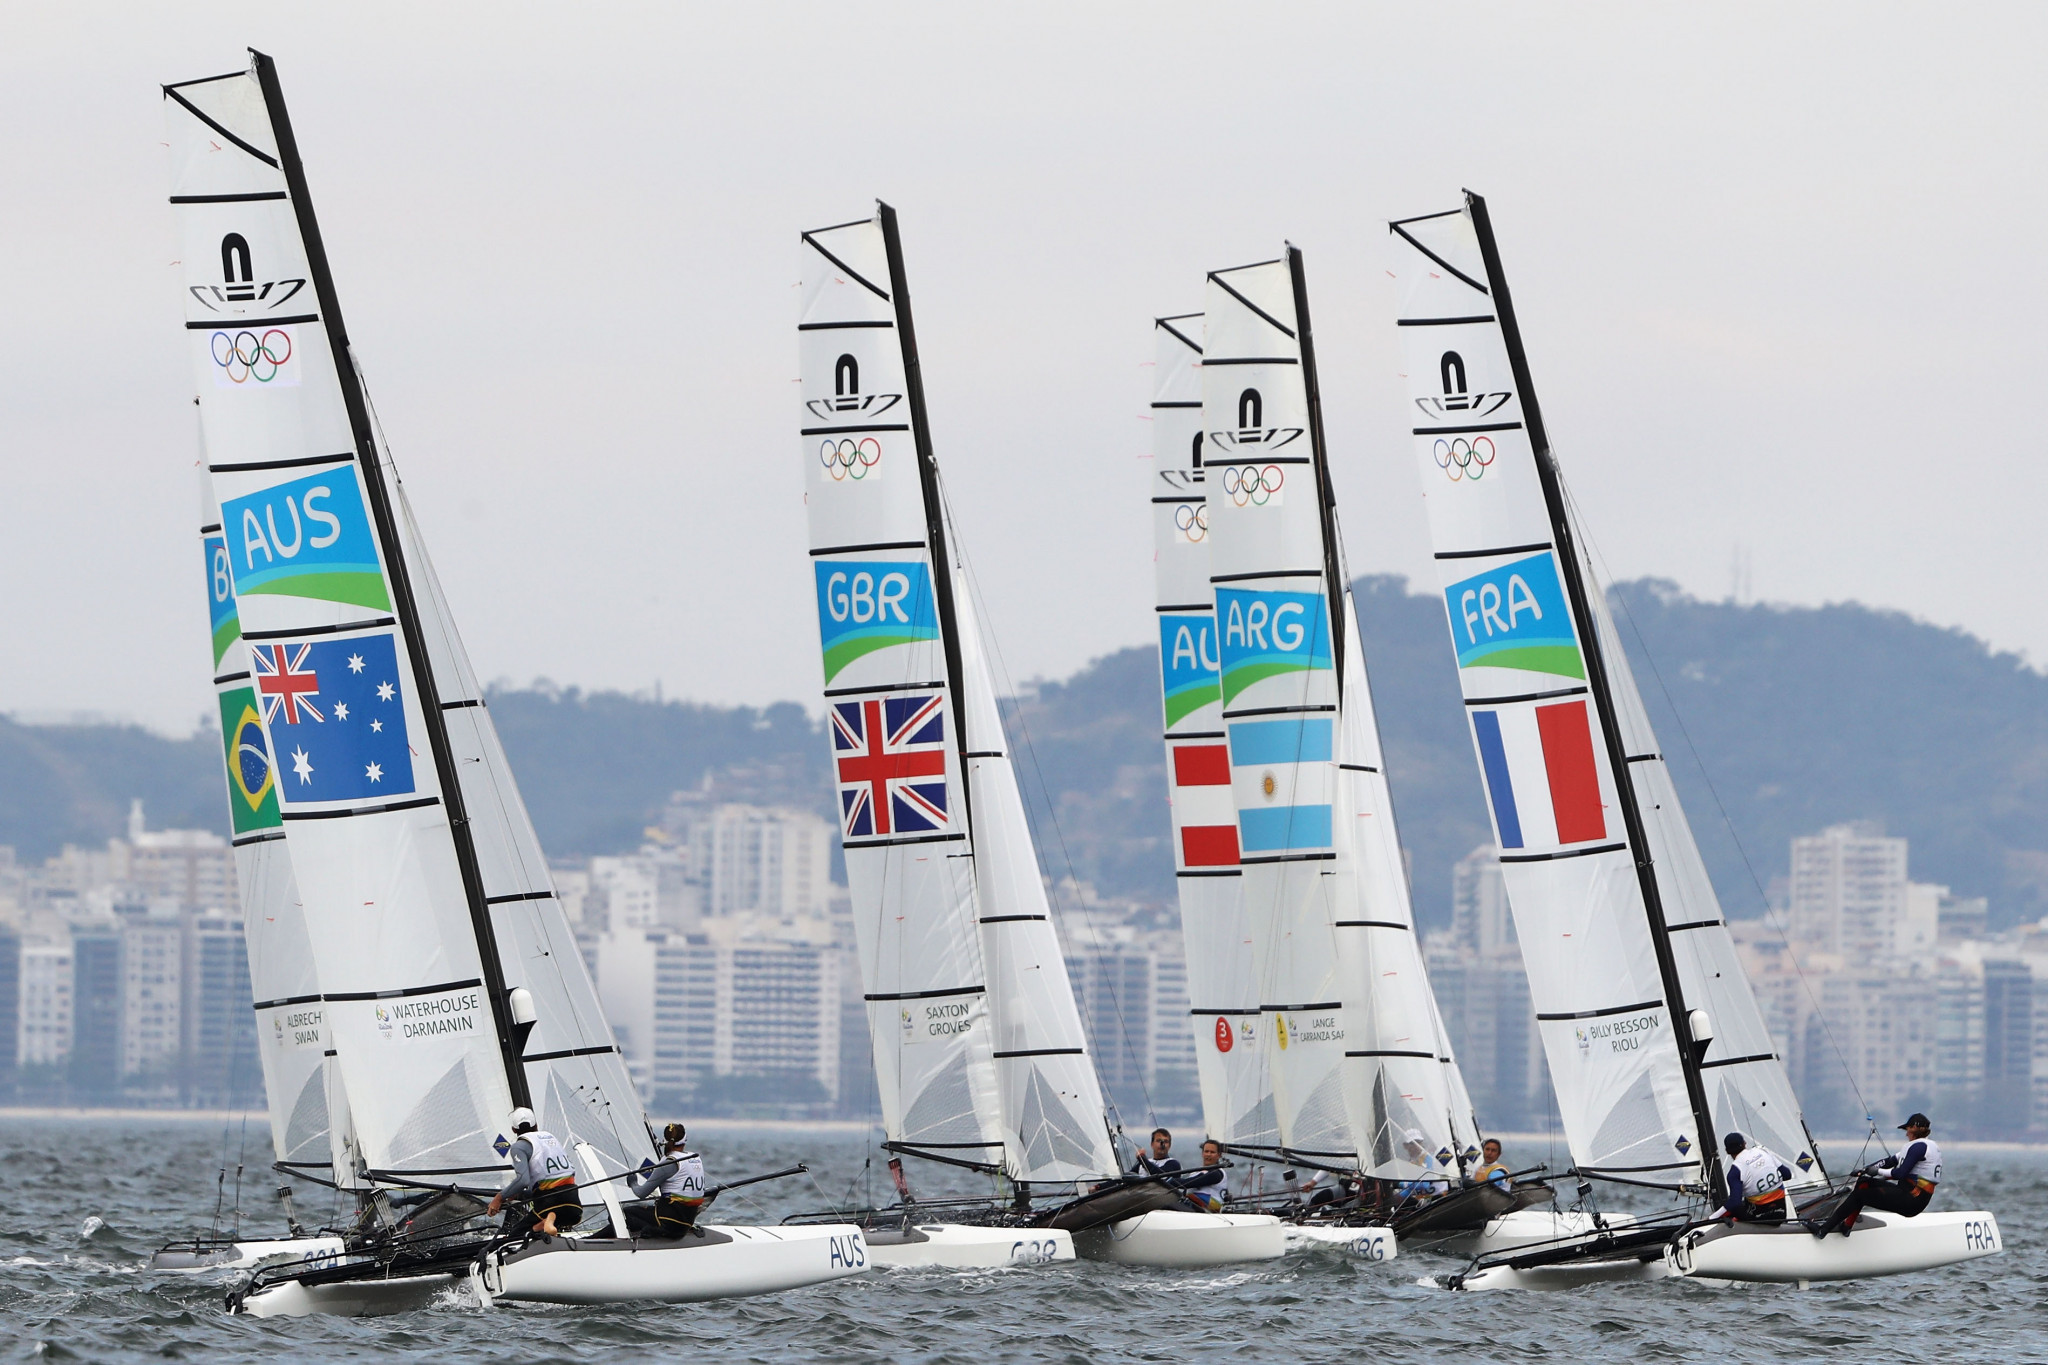 Nacra 17 has reportedly been renewed for Paris 2024 ©Getty Images